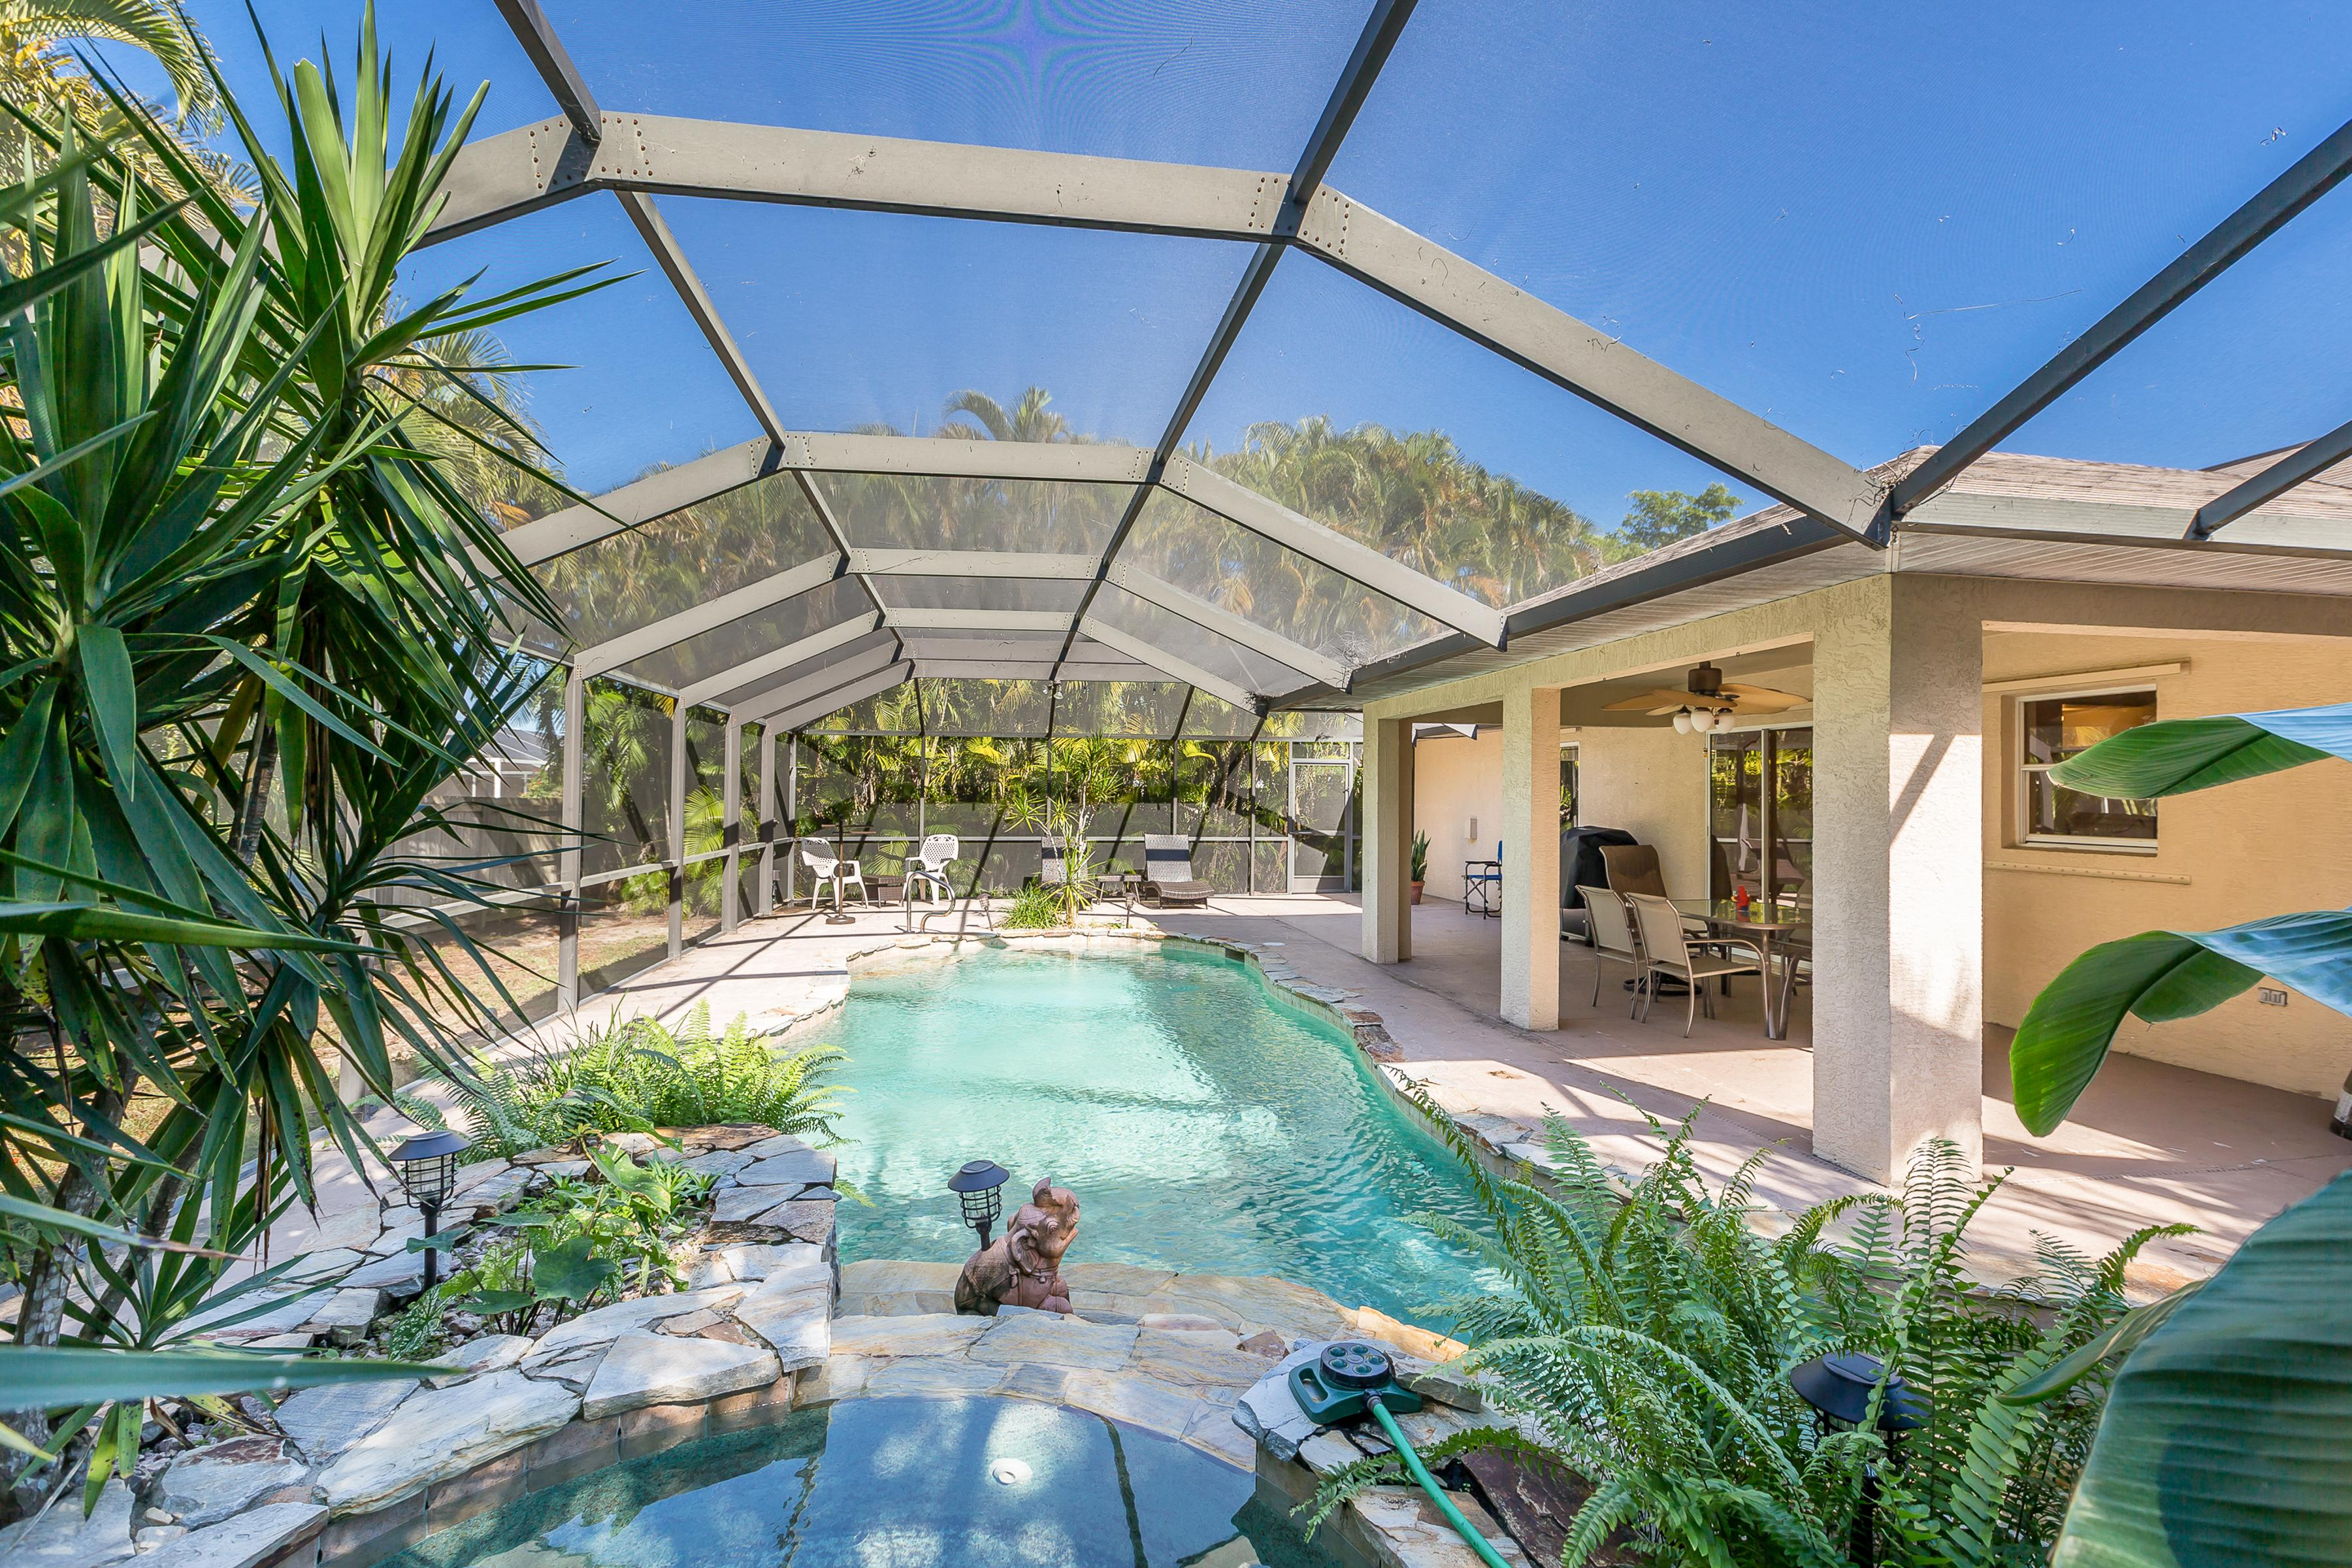 Unwind in your tropical oasis with a private heated pool, spa and dining area. This rental is professionally managed and maintained by TurnKey Vacation Rentals.